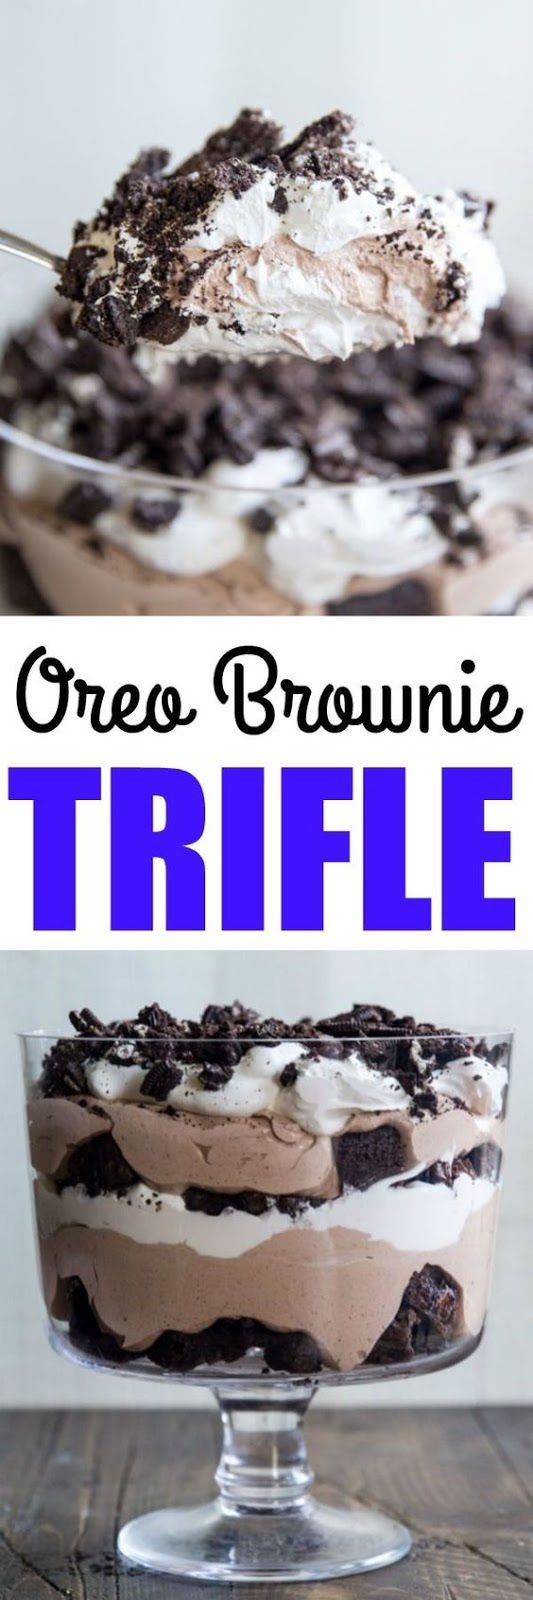 Say what yous desire close the goodness of homemade brownies Sweet Oreo Brownie Trifle